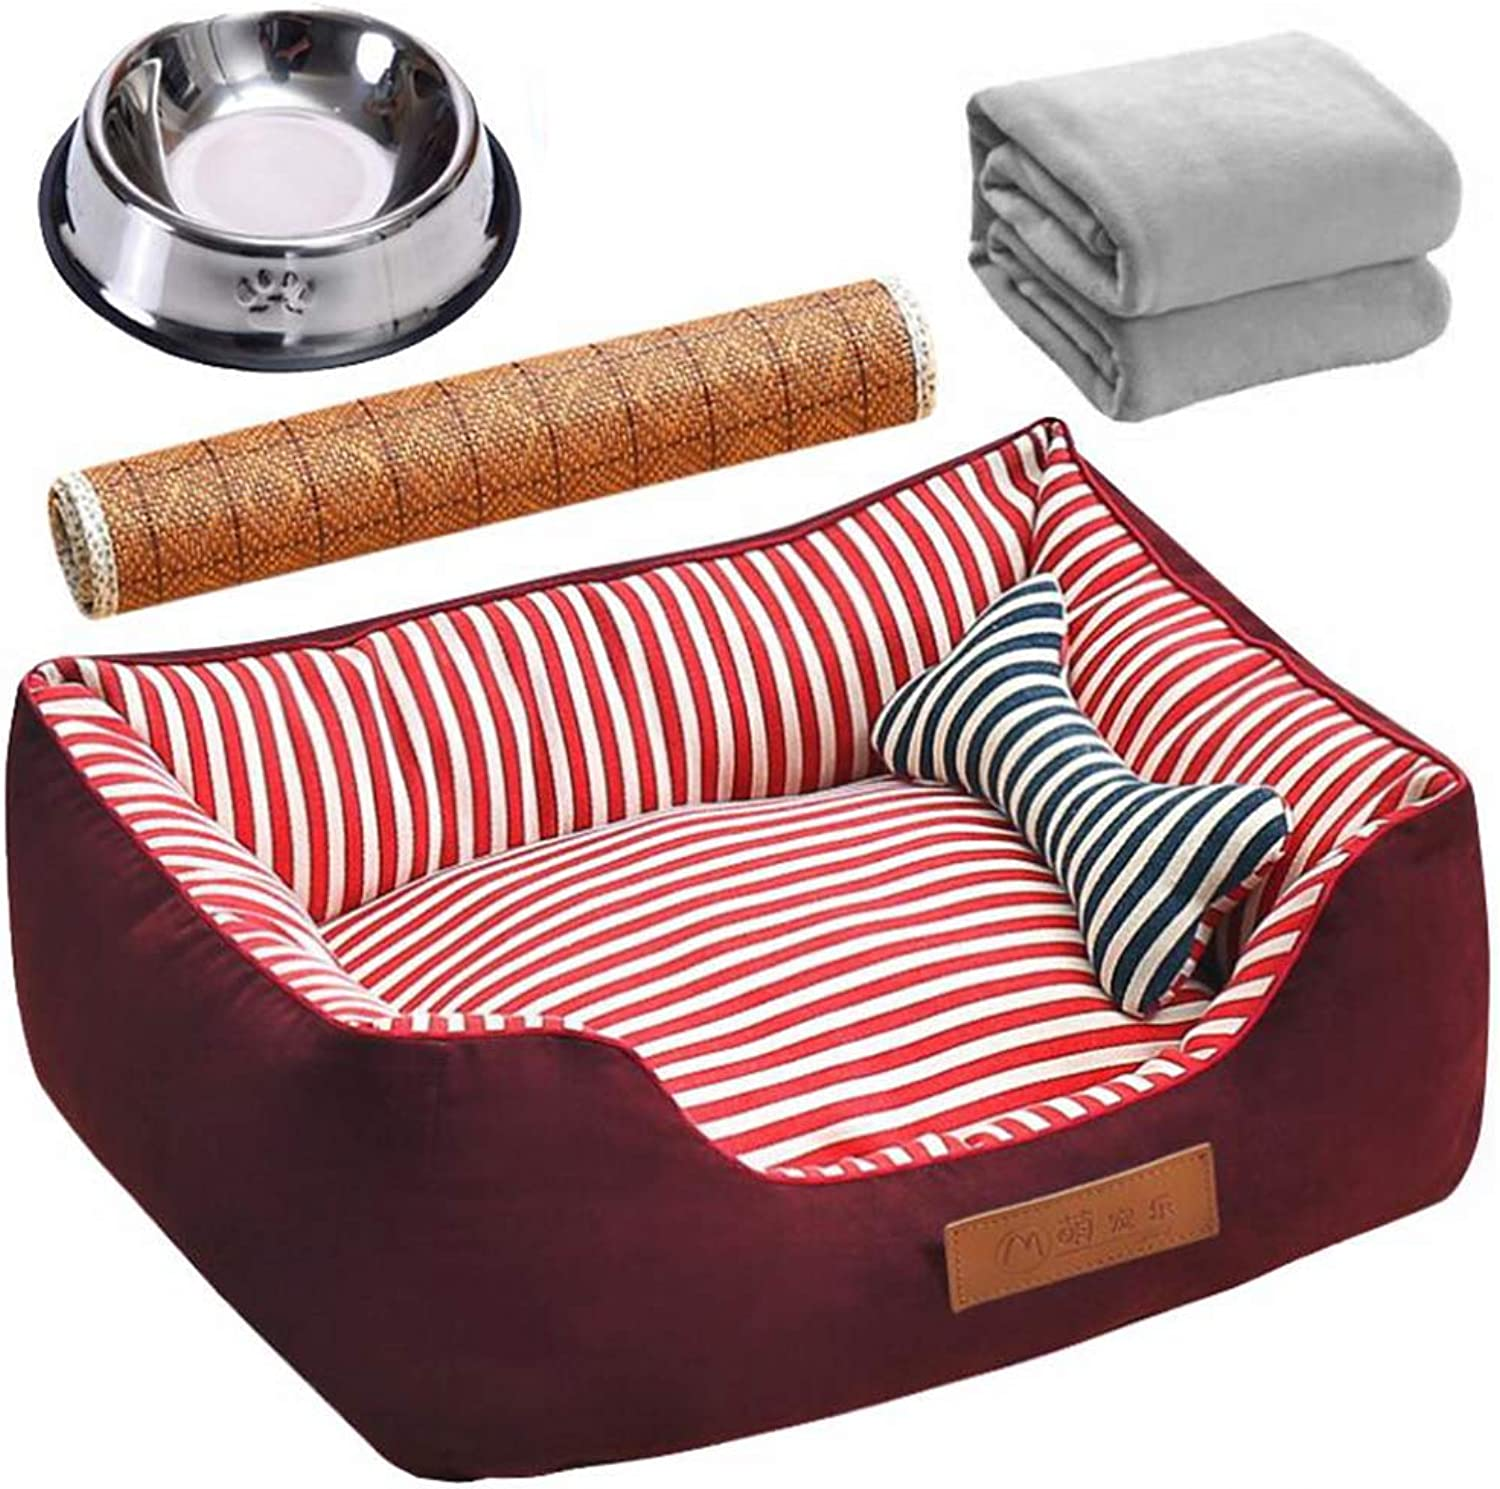 CUUYQ Soft pad Deluxe pet beds, Cozy Nonslip Dog & cat beds Pet Cushion Washable Pet Bed for Dogs & Cats,color C_XL